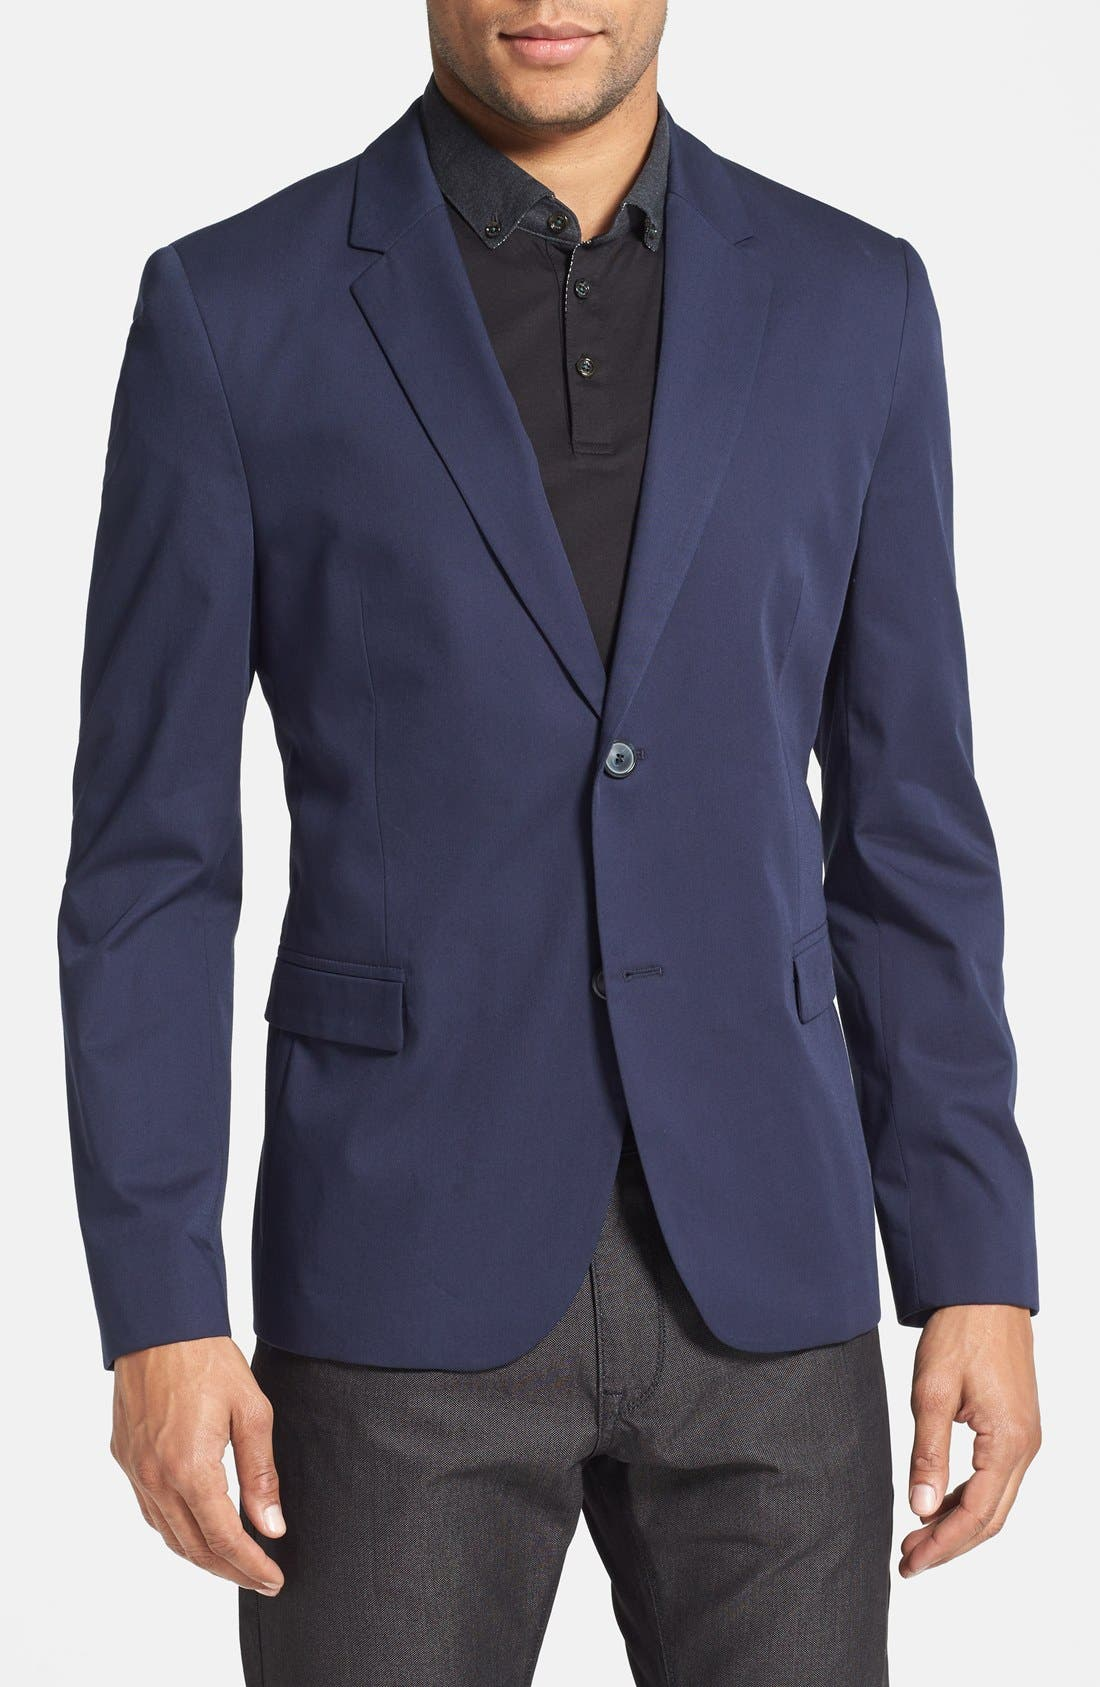 Alternate Image 1 Selected - HUGO 'Ambrus' Trim Fit Navy Stretch Cotton Sport Coat (Online Only)